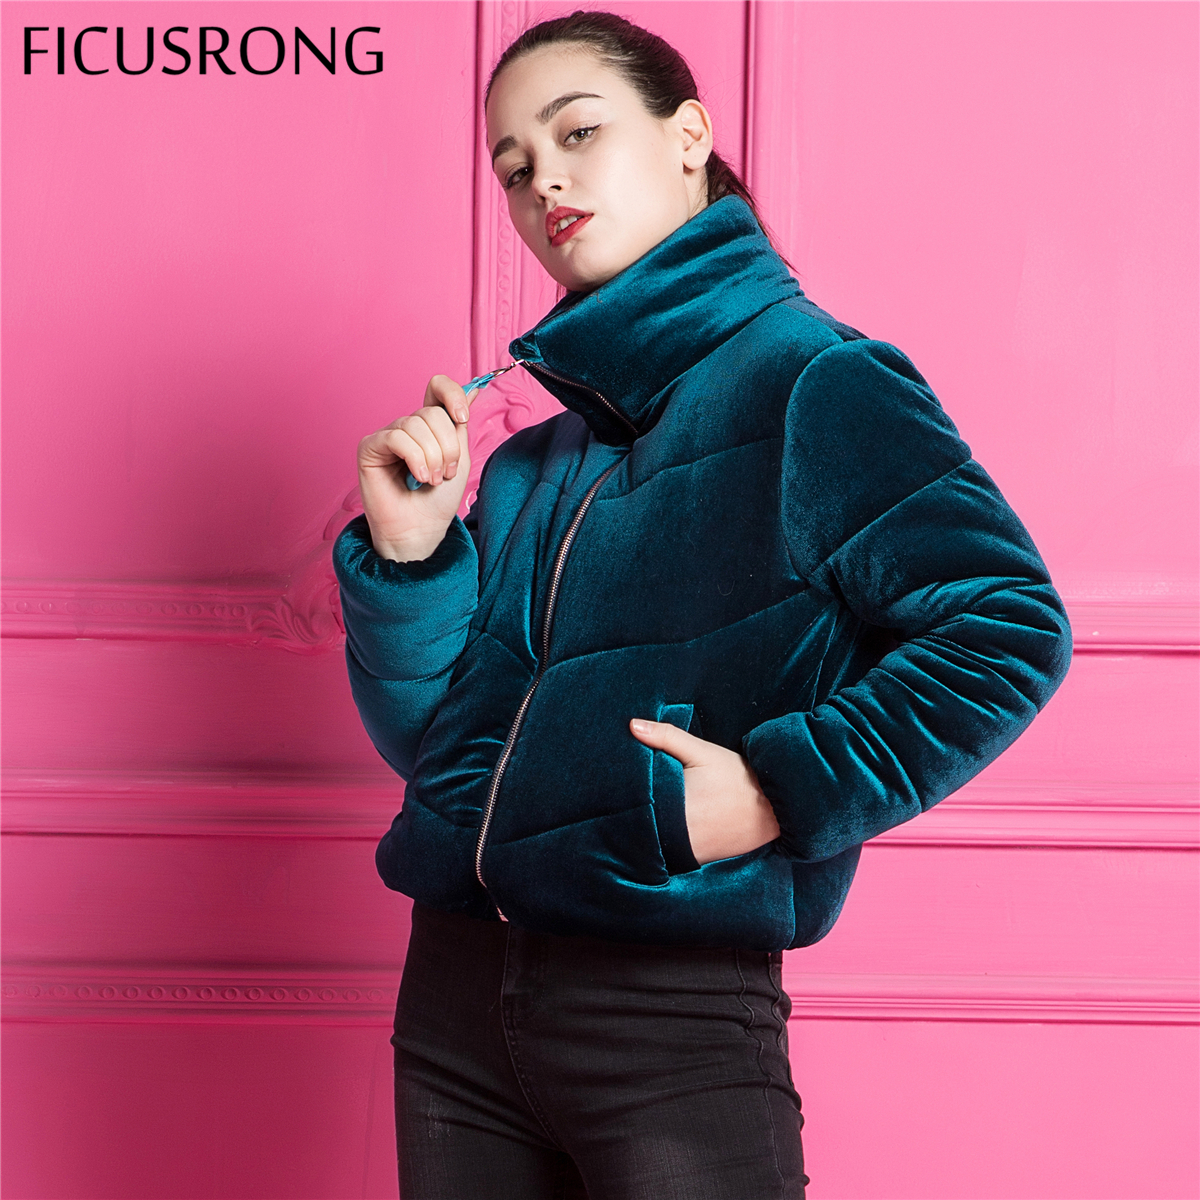 Fashion Velvet Cotton Padded   Basic     Jacket   Coat Warm Blue Parkas   Jackets   Female Autumn Winter   Jacket   Women Outerwear FICUSRONG